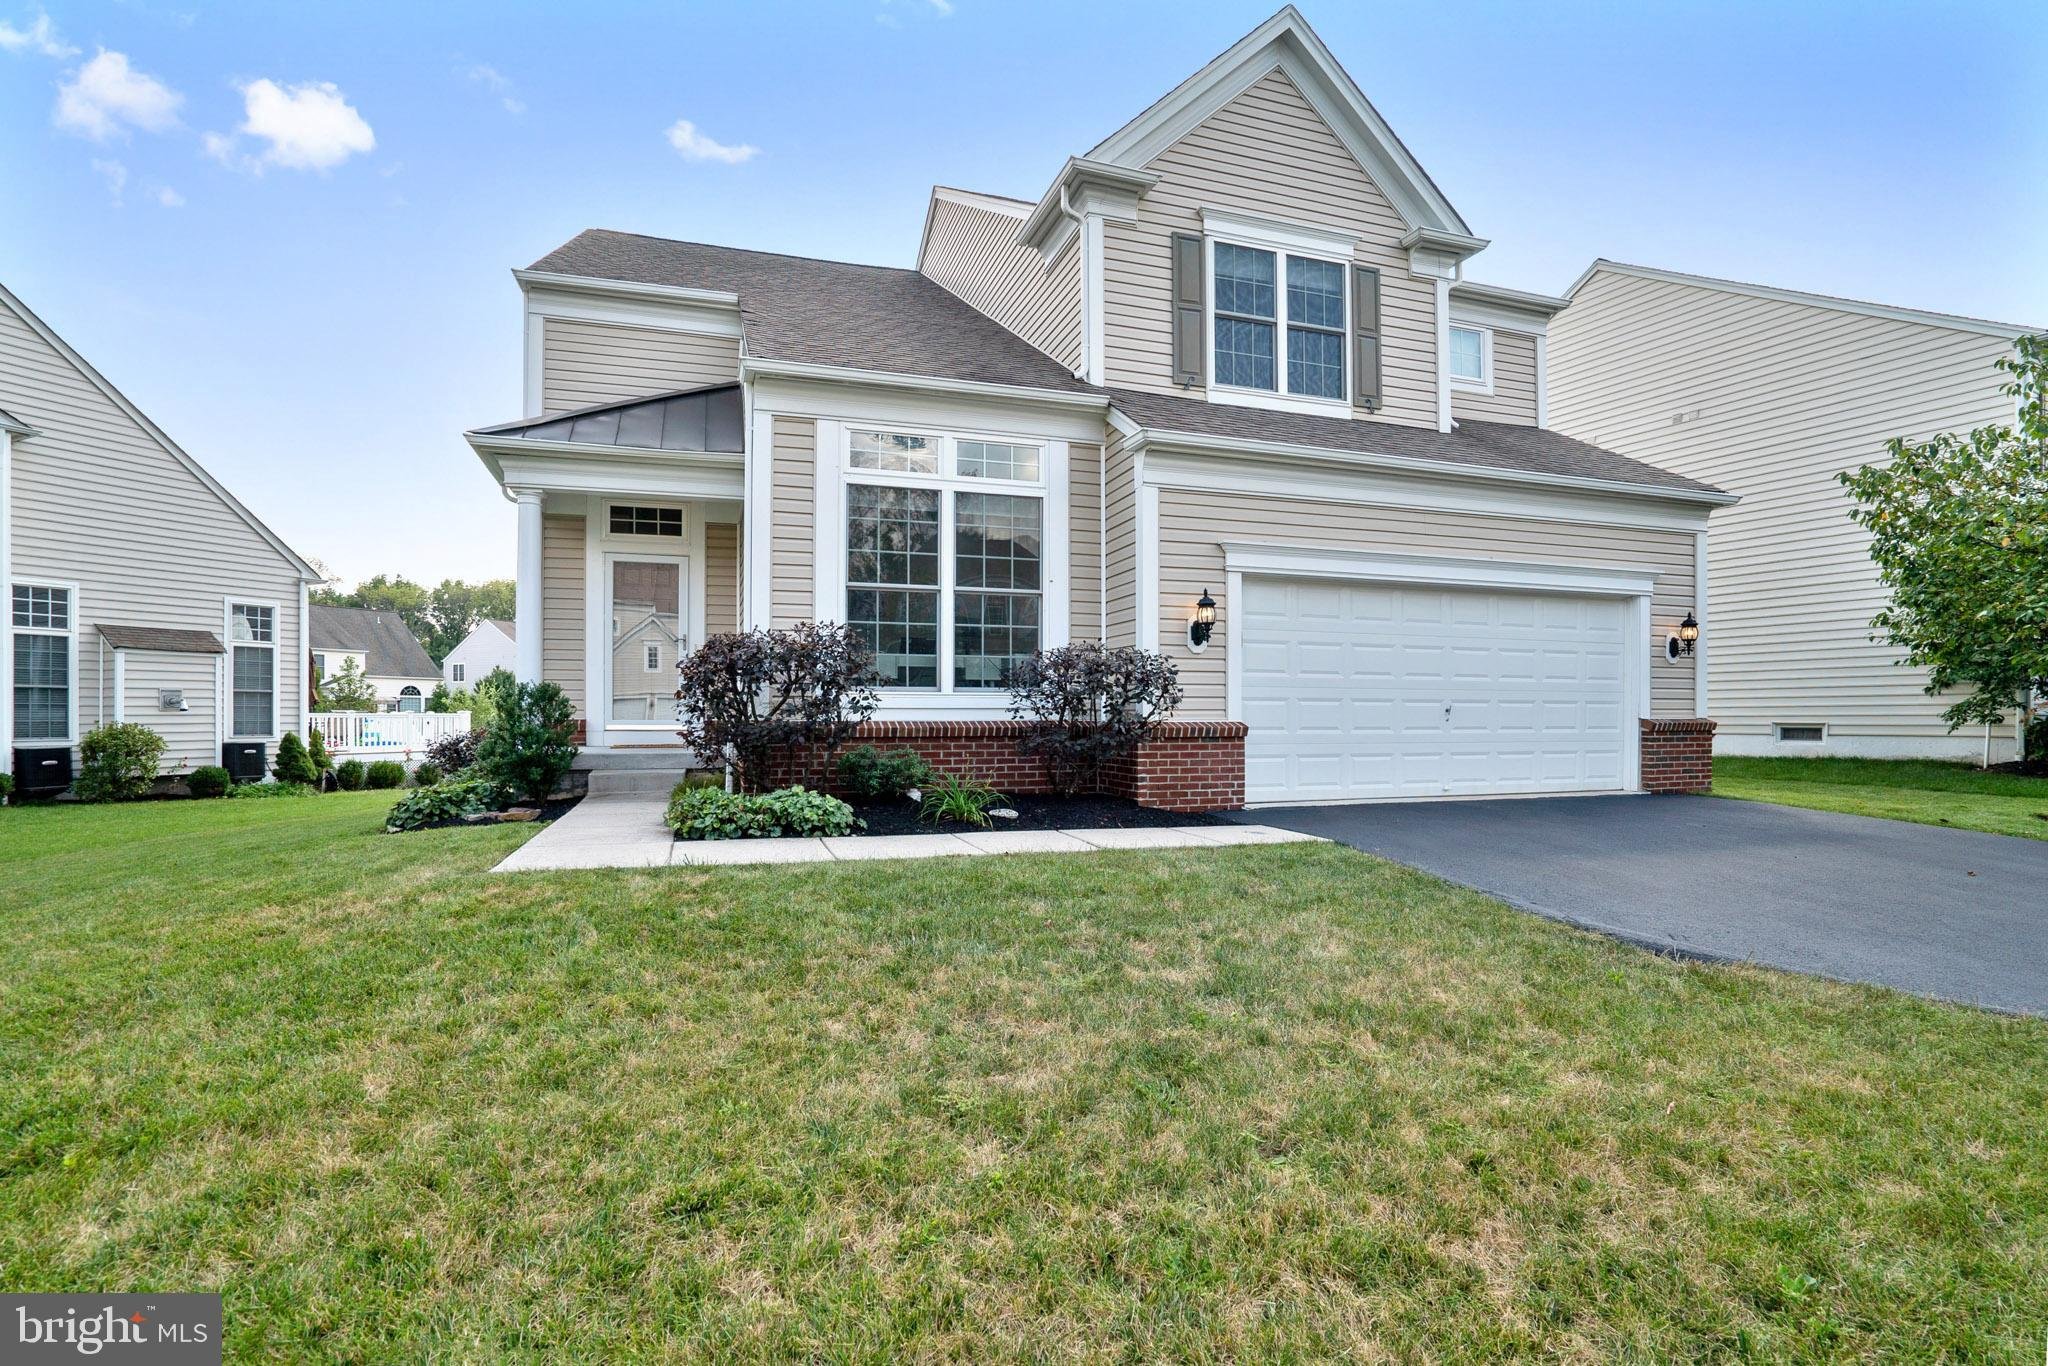 409 DARRAH DRIVE, FOUNTAINVILLE, PA 18923